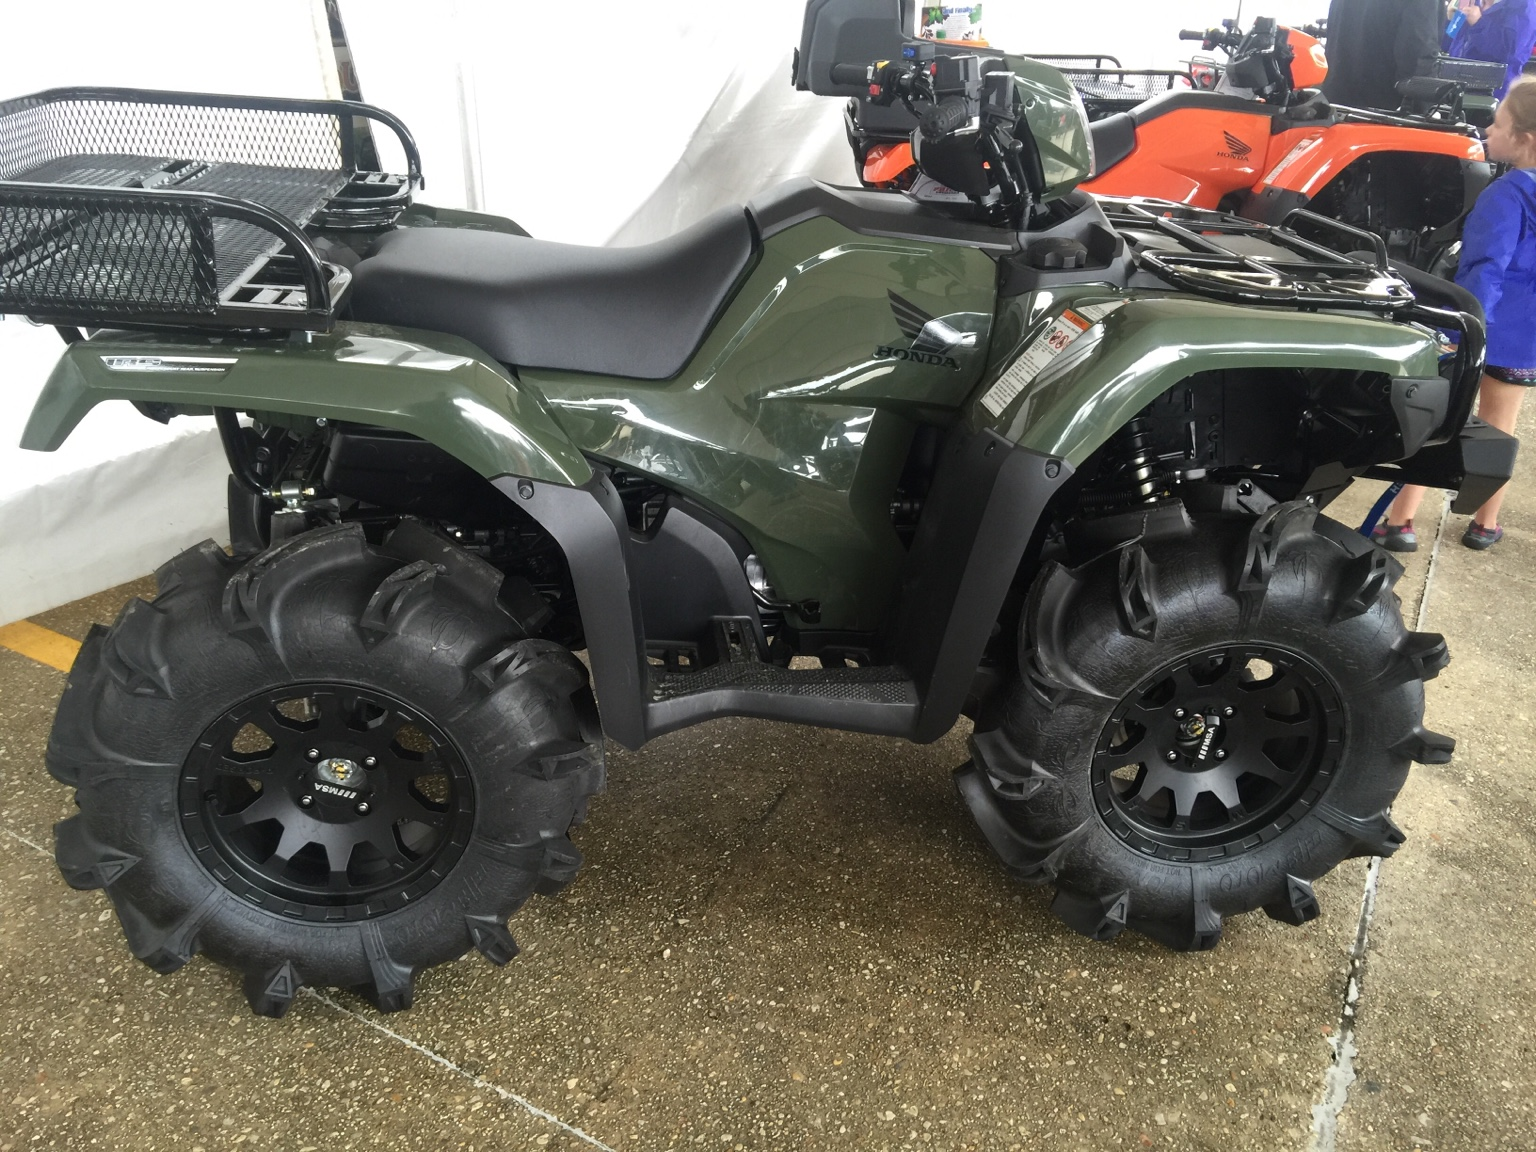 Honda Rancher For Sale >> 2016 rubi lifted on 30s!! - Honda Foreman Forums : Rubicon, Rincon, Rancher and Recon Forum